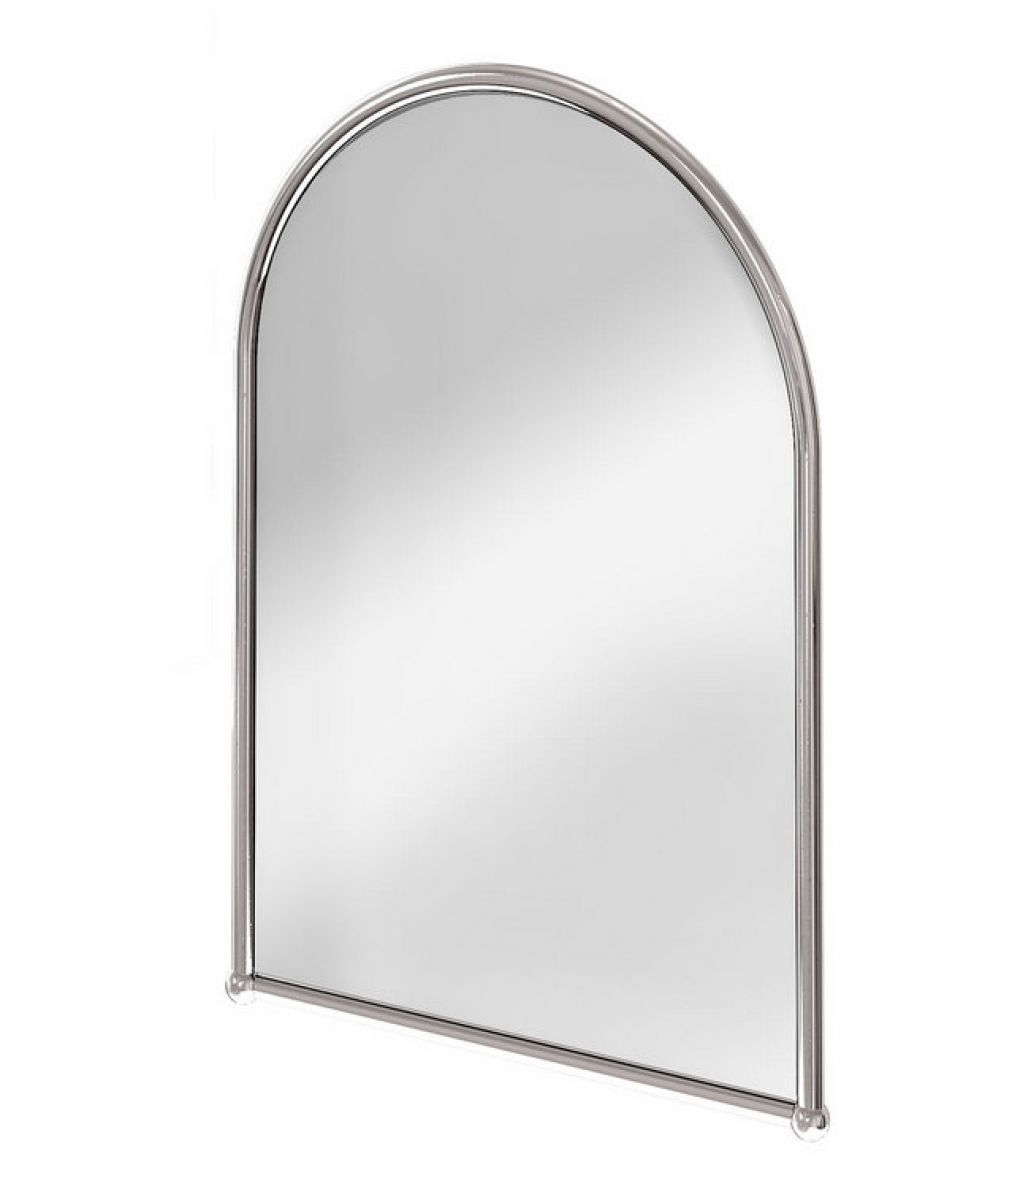 Bathroom White Arched Bathroom Mirrors Pictures Decorations With Arched Mirrors Bathroom (Image 9 of 15)